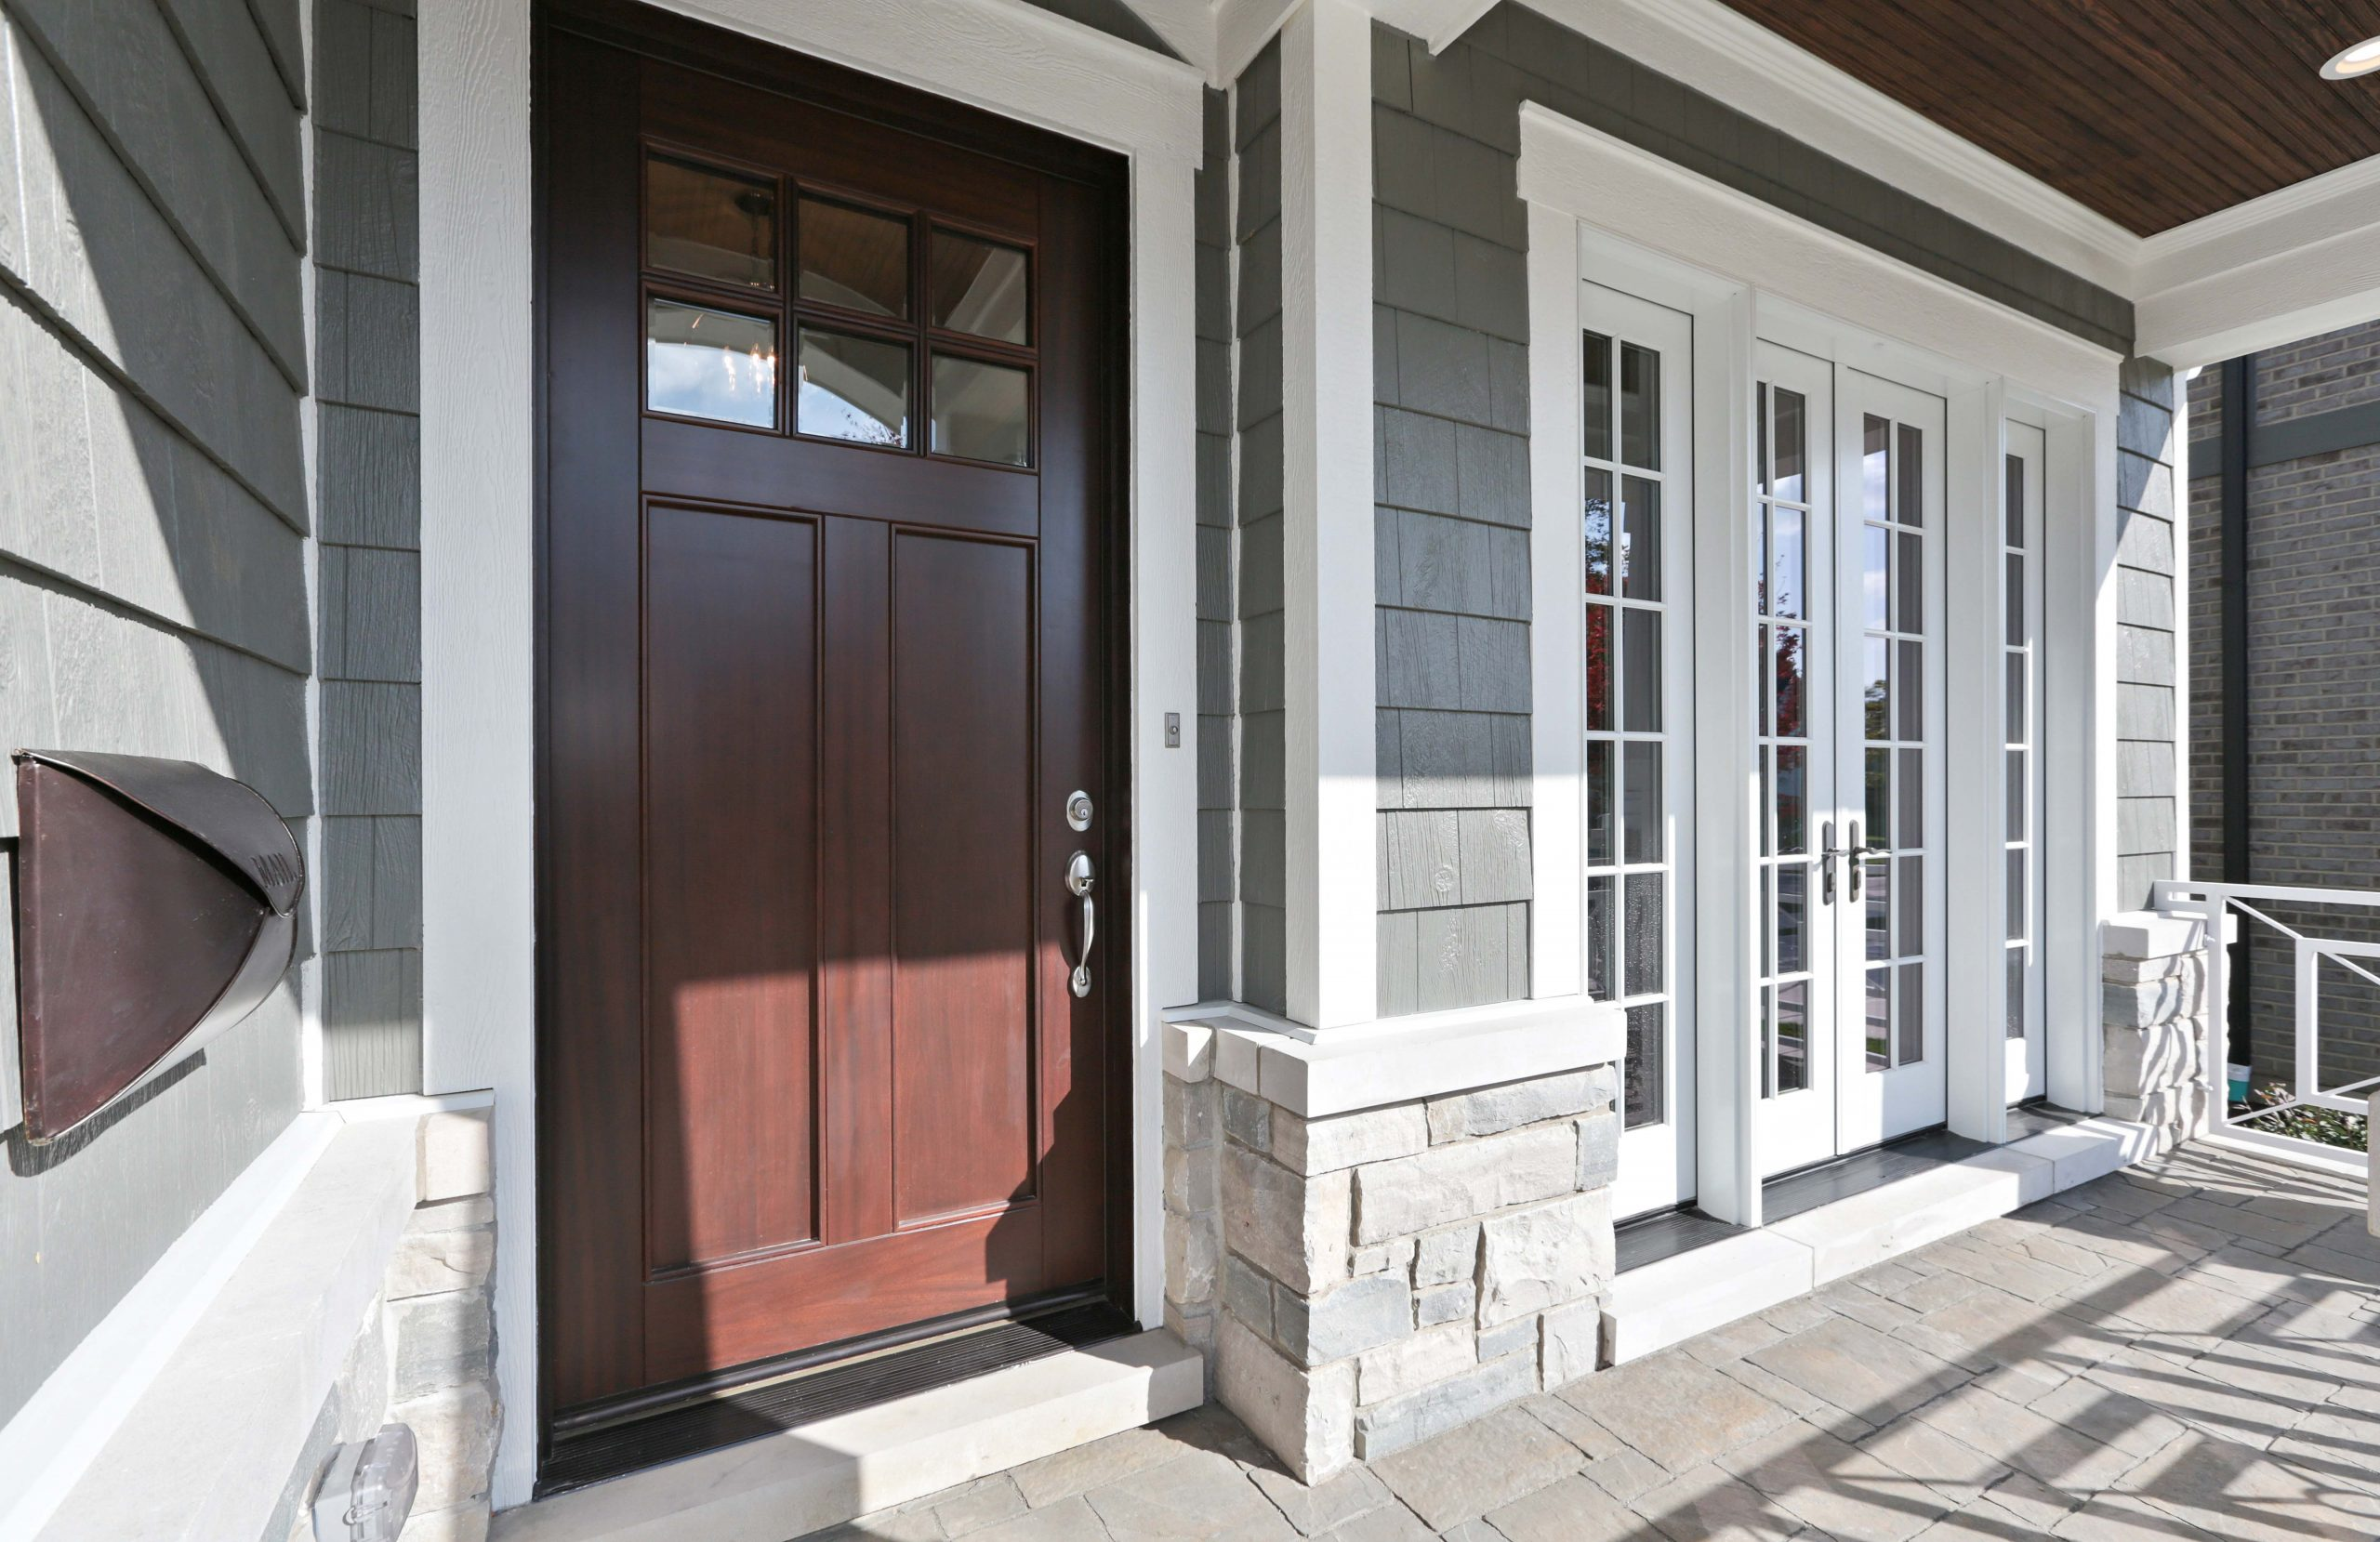 Gray vinyl siding with white trim. Dark brown porch soffit with recessed lighting. Dark brown stained front door. Light gray stone veneer. Paver porch top.